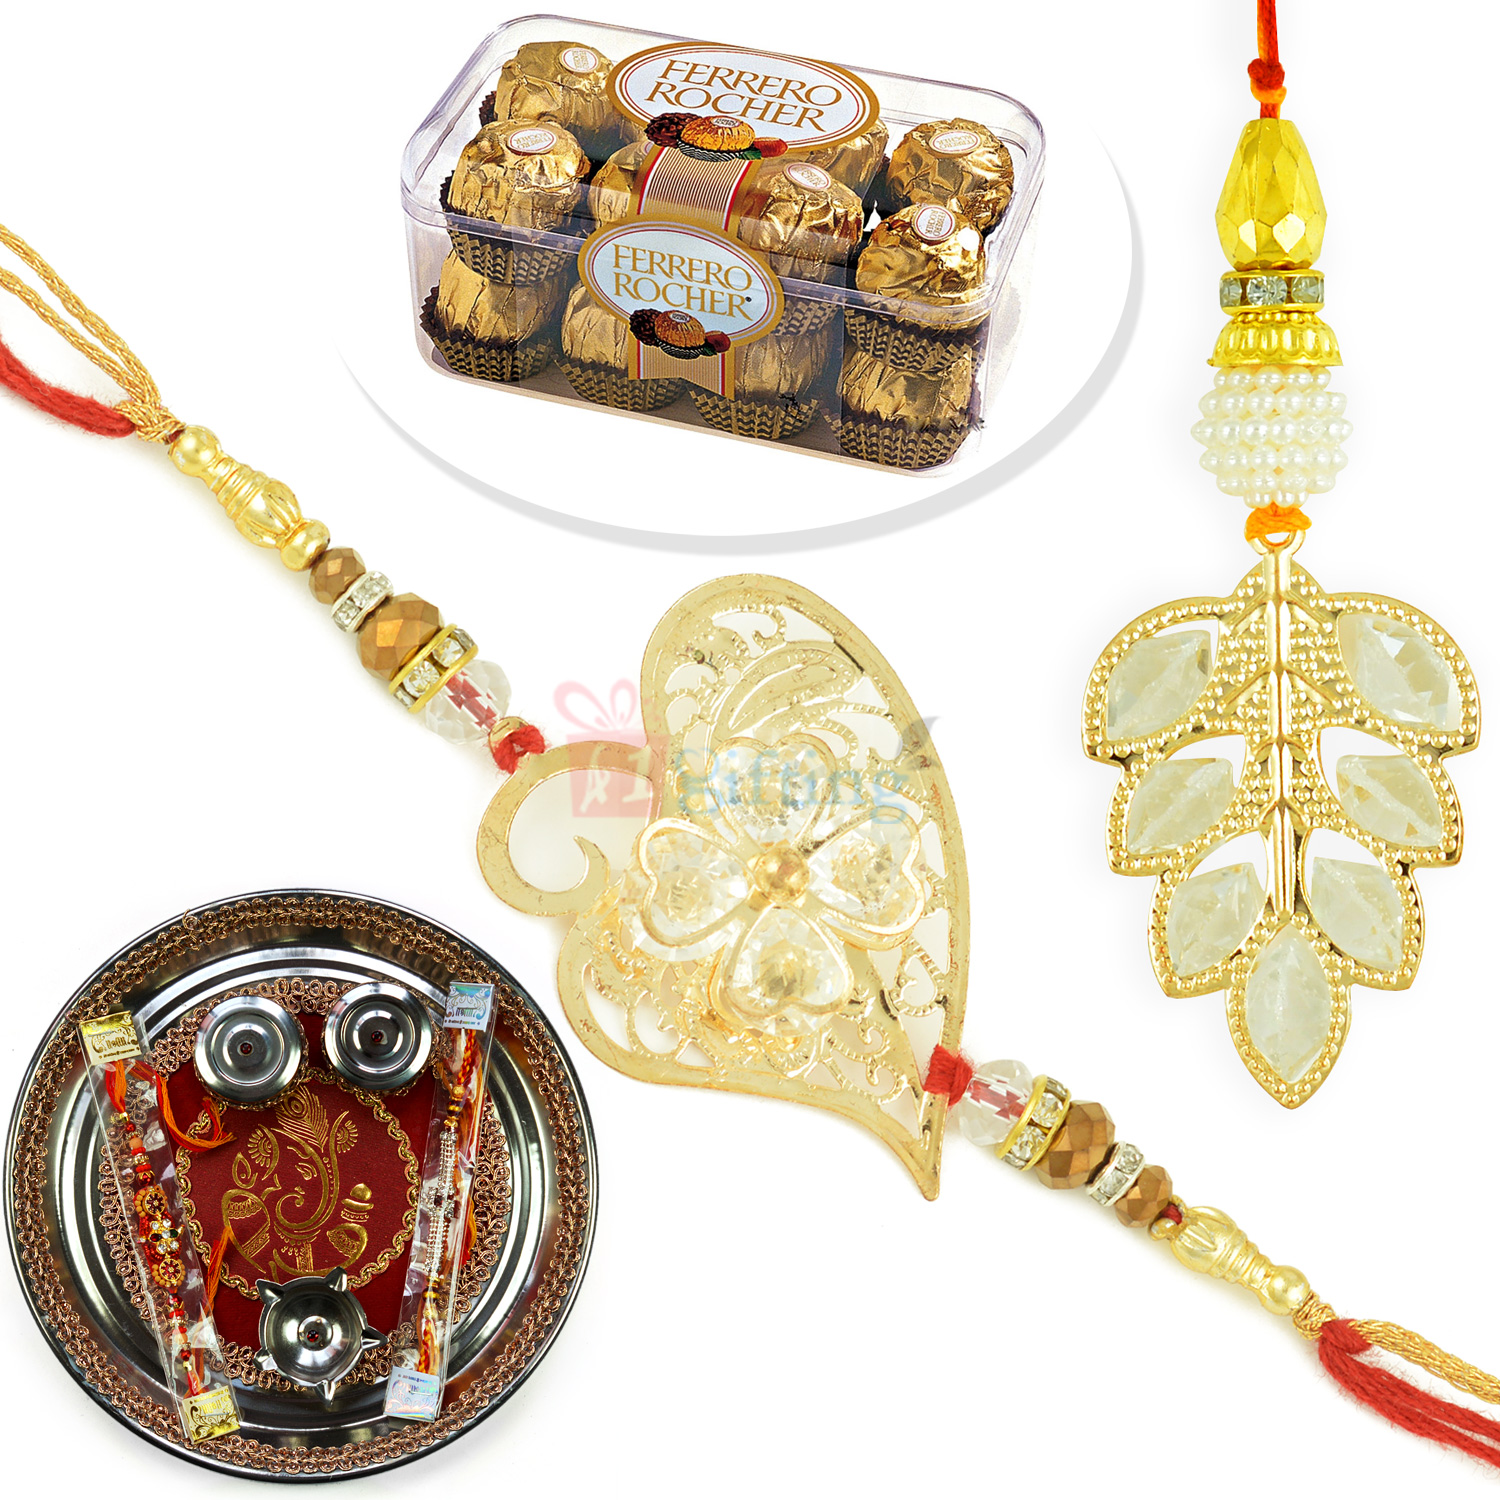 Leaf Pair Rakhi with Ferrero T16 and Rakhi Pooja Thali